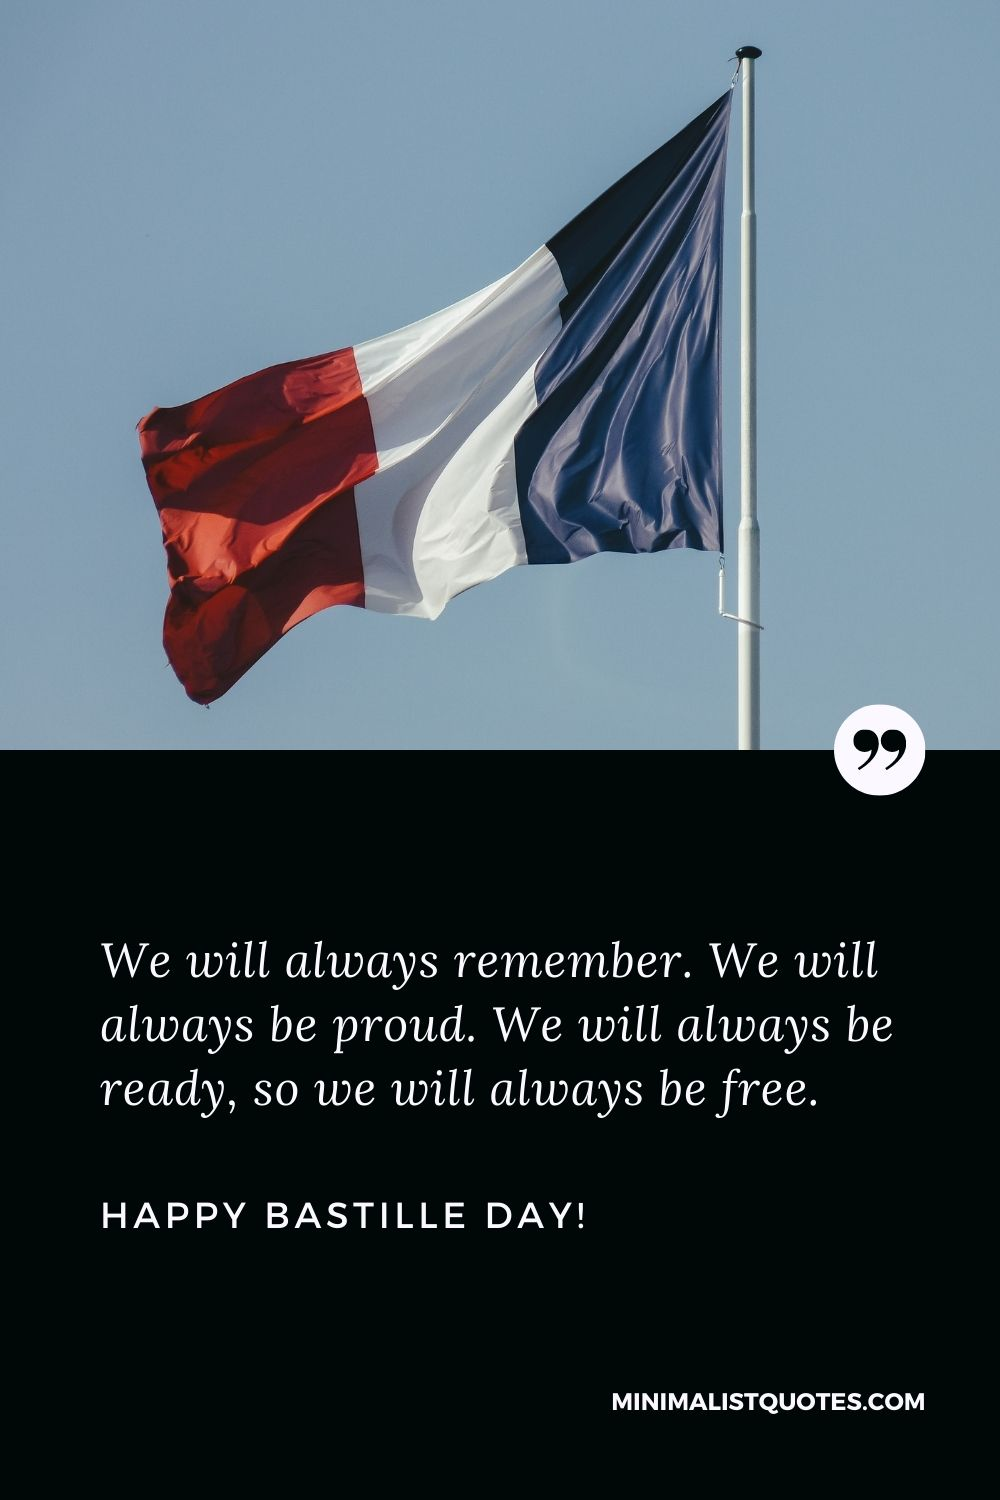 Bastille Day Greetings: We will always remember. We will always be proud. We will always be ready, so we will always be free. Happy Bastille Day!